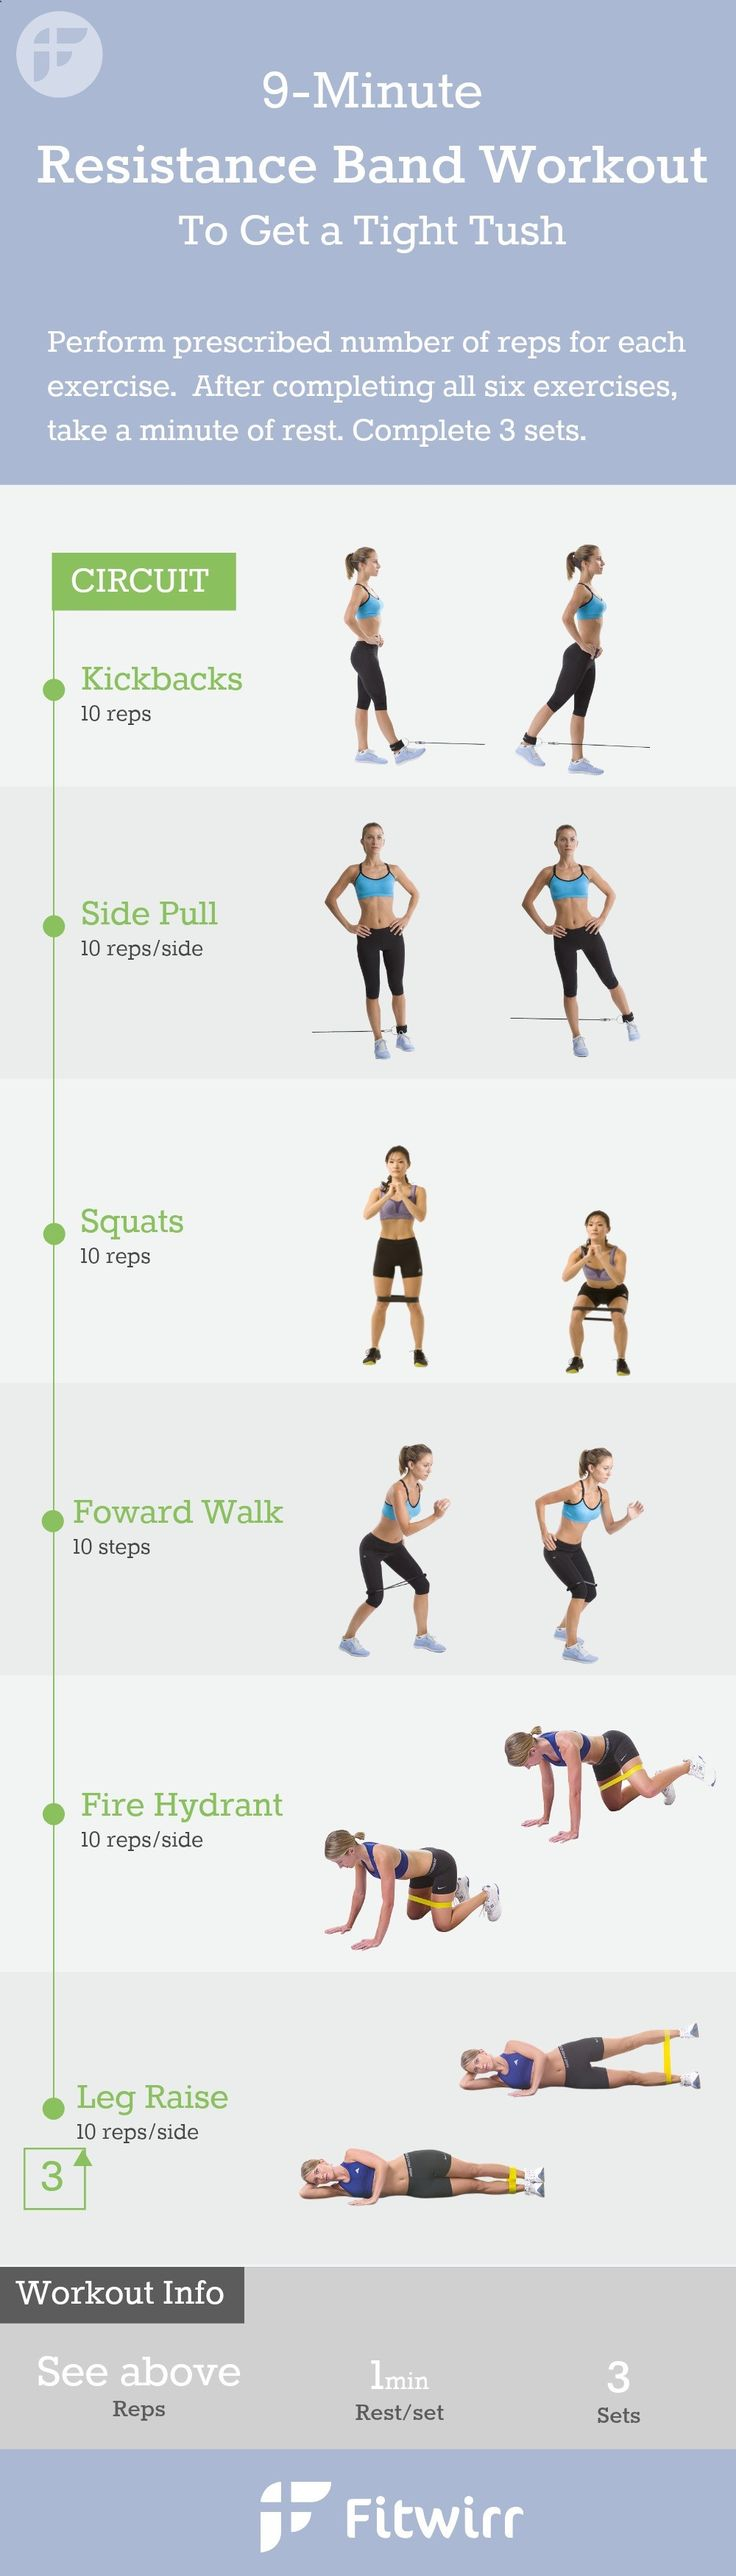 9-Minute Resistance Band Exercises for women. You dont have to lift heavy dumbbells or a medicine ball to get a great workout at home. Follow this 9 minute exercise band workouts to firm your butt, legs and inner thighs.